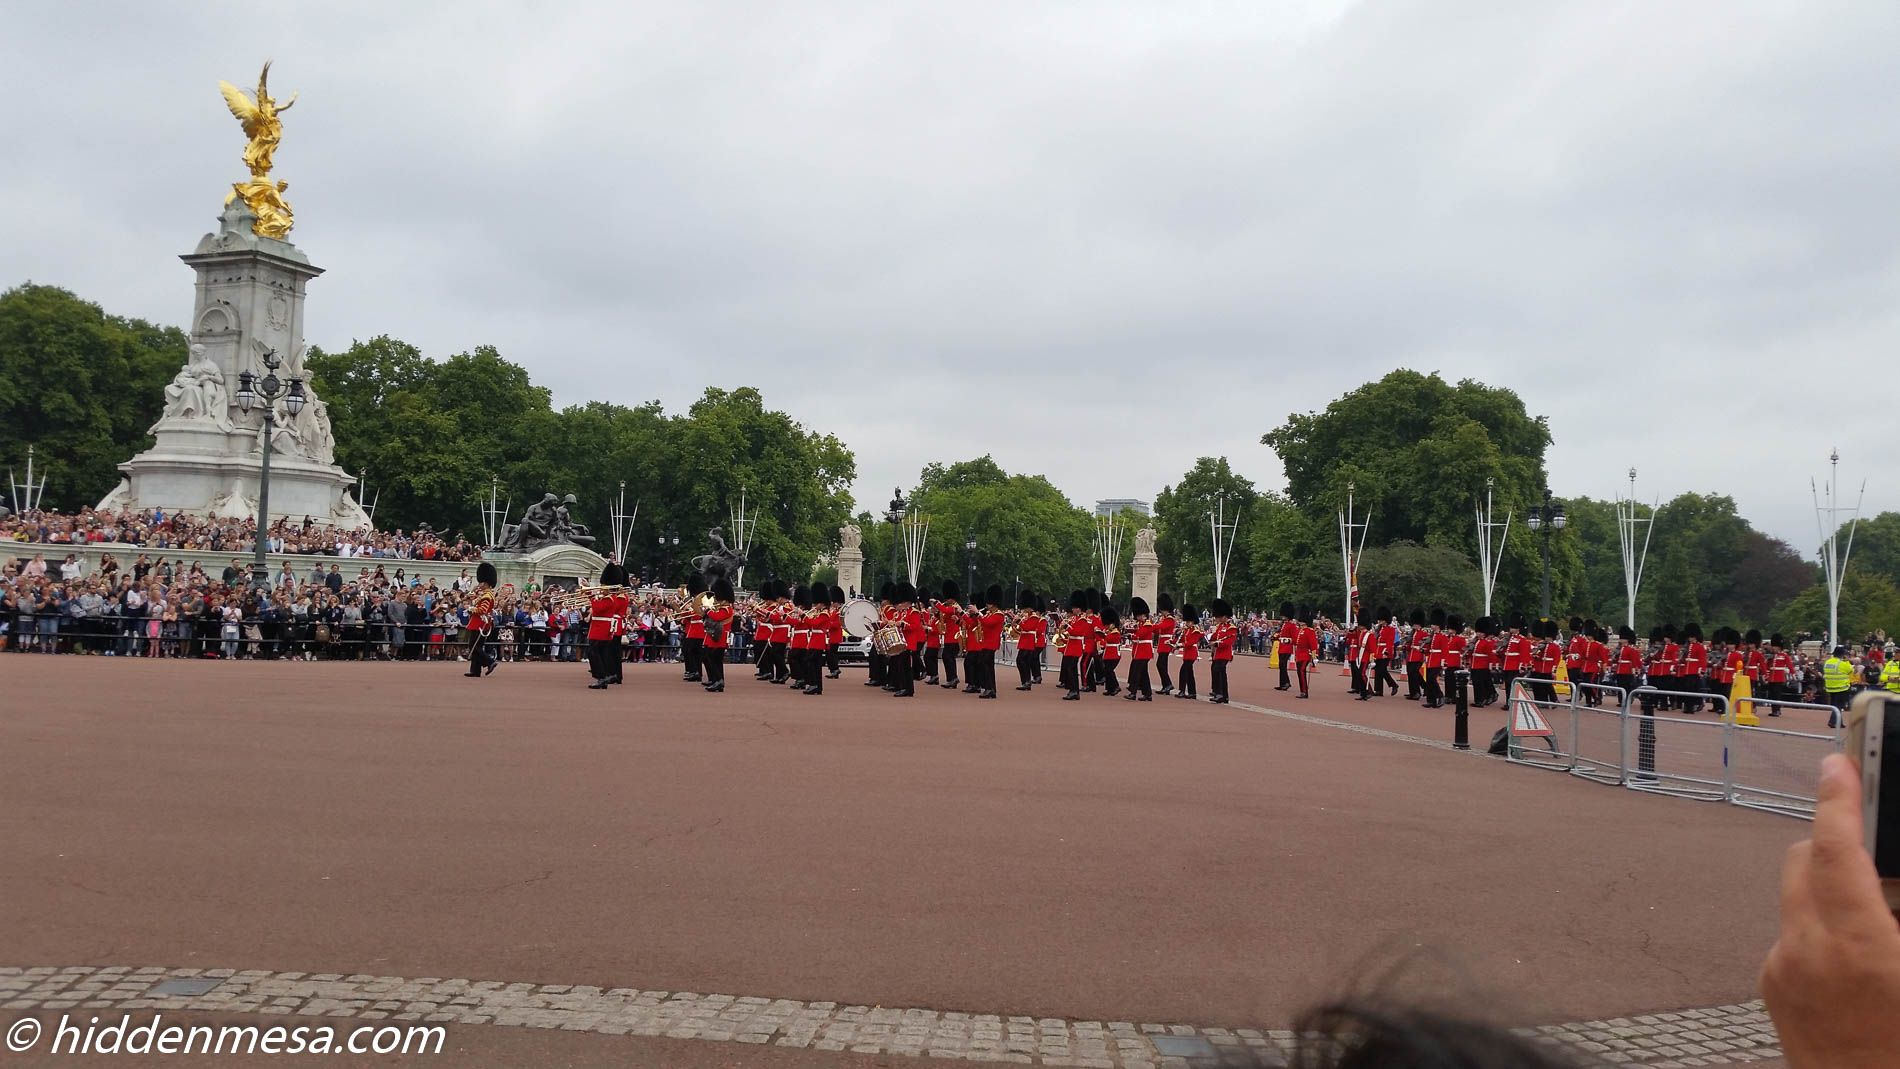 The Bands of the Guards Division